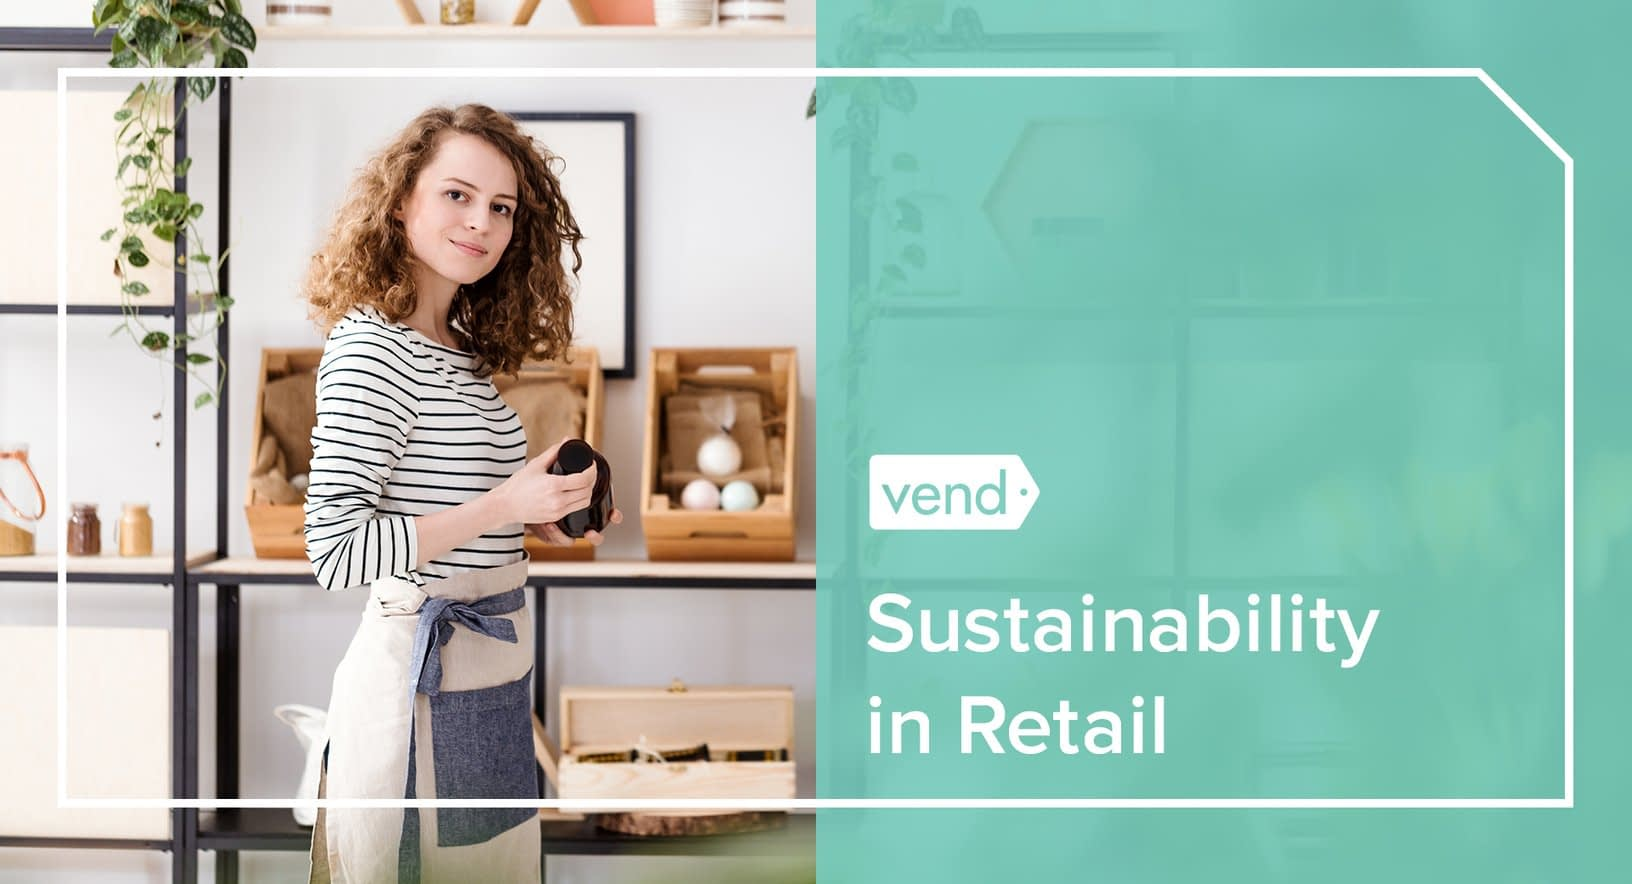 , Sustainability in Retail: 4 Ways to Make Your Business More Sustainable, TheCircularEconomy.com